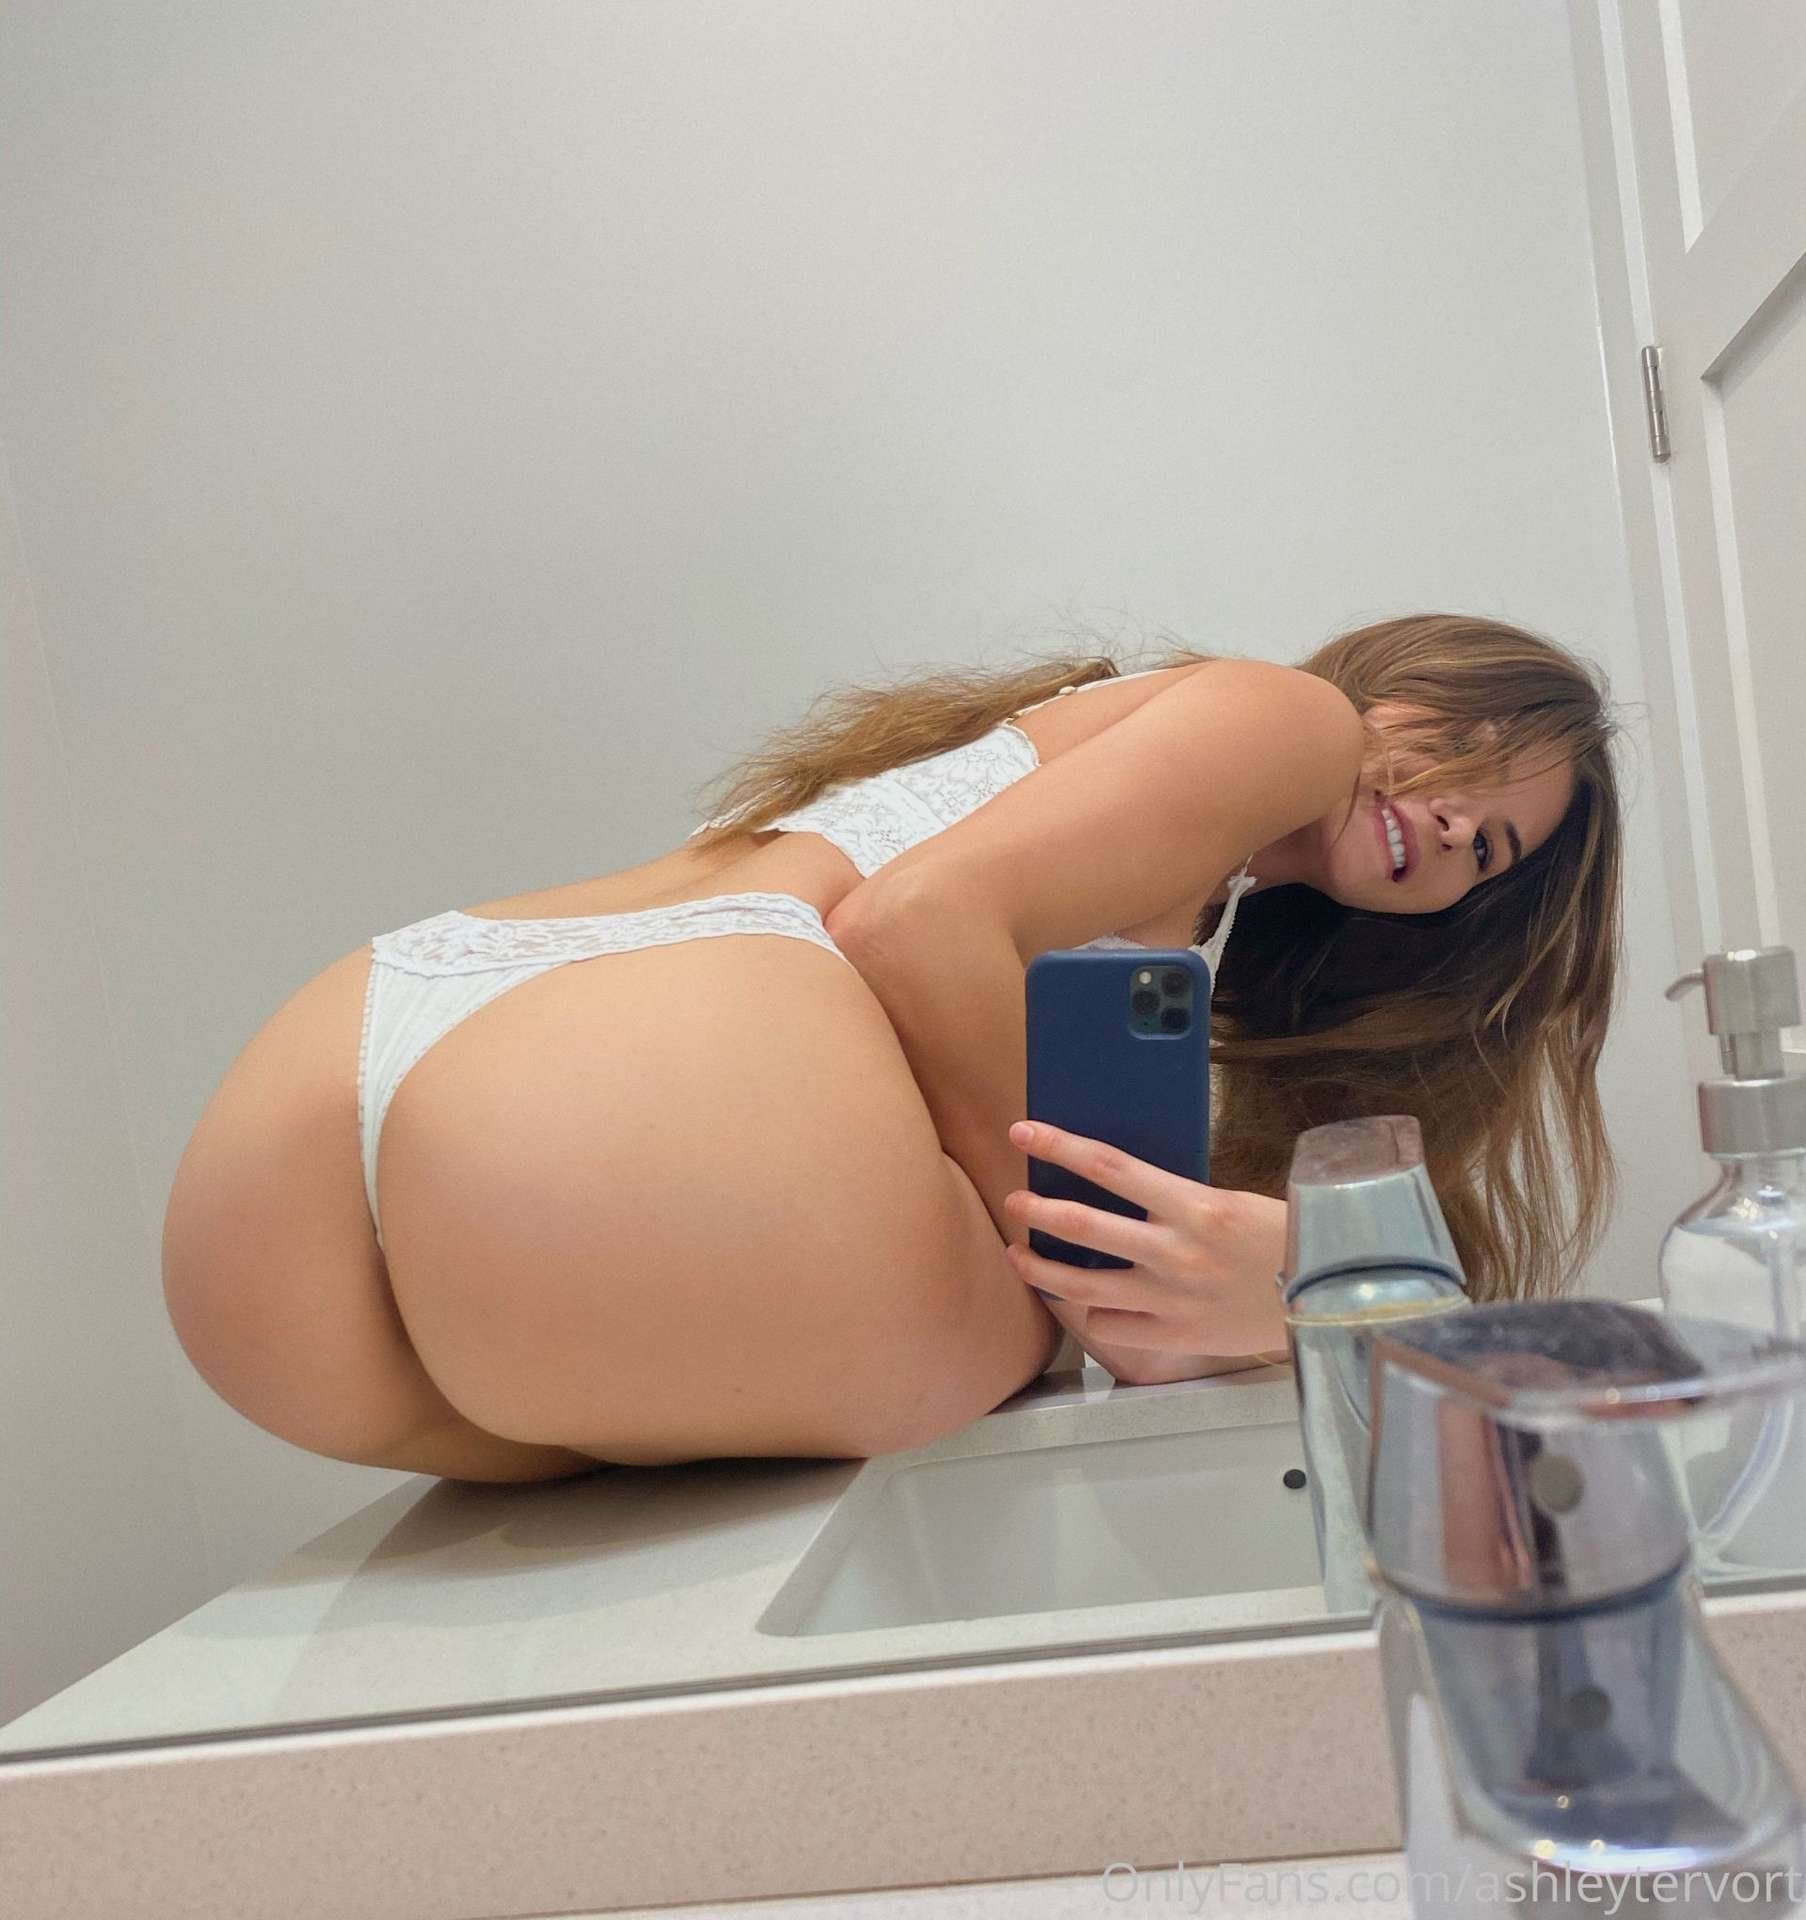 Ashley Tervort Booty and Cleavage in White Lingerie